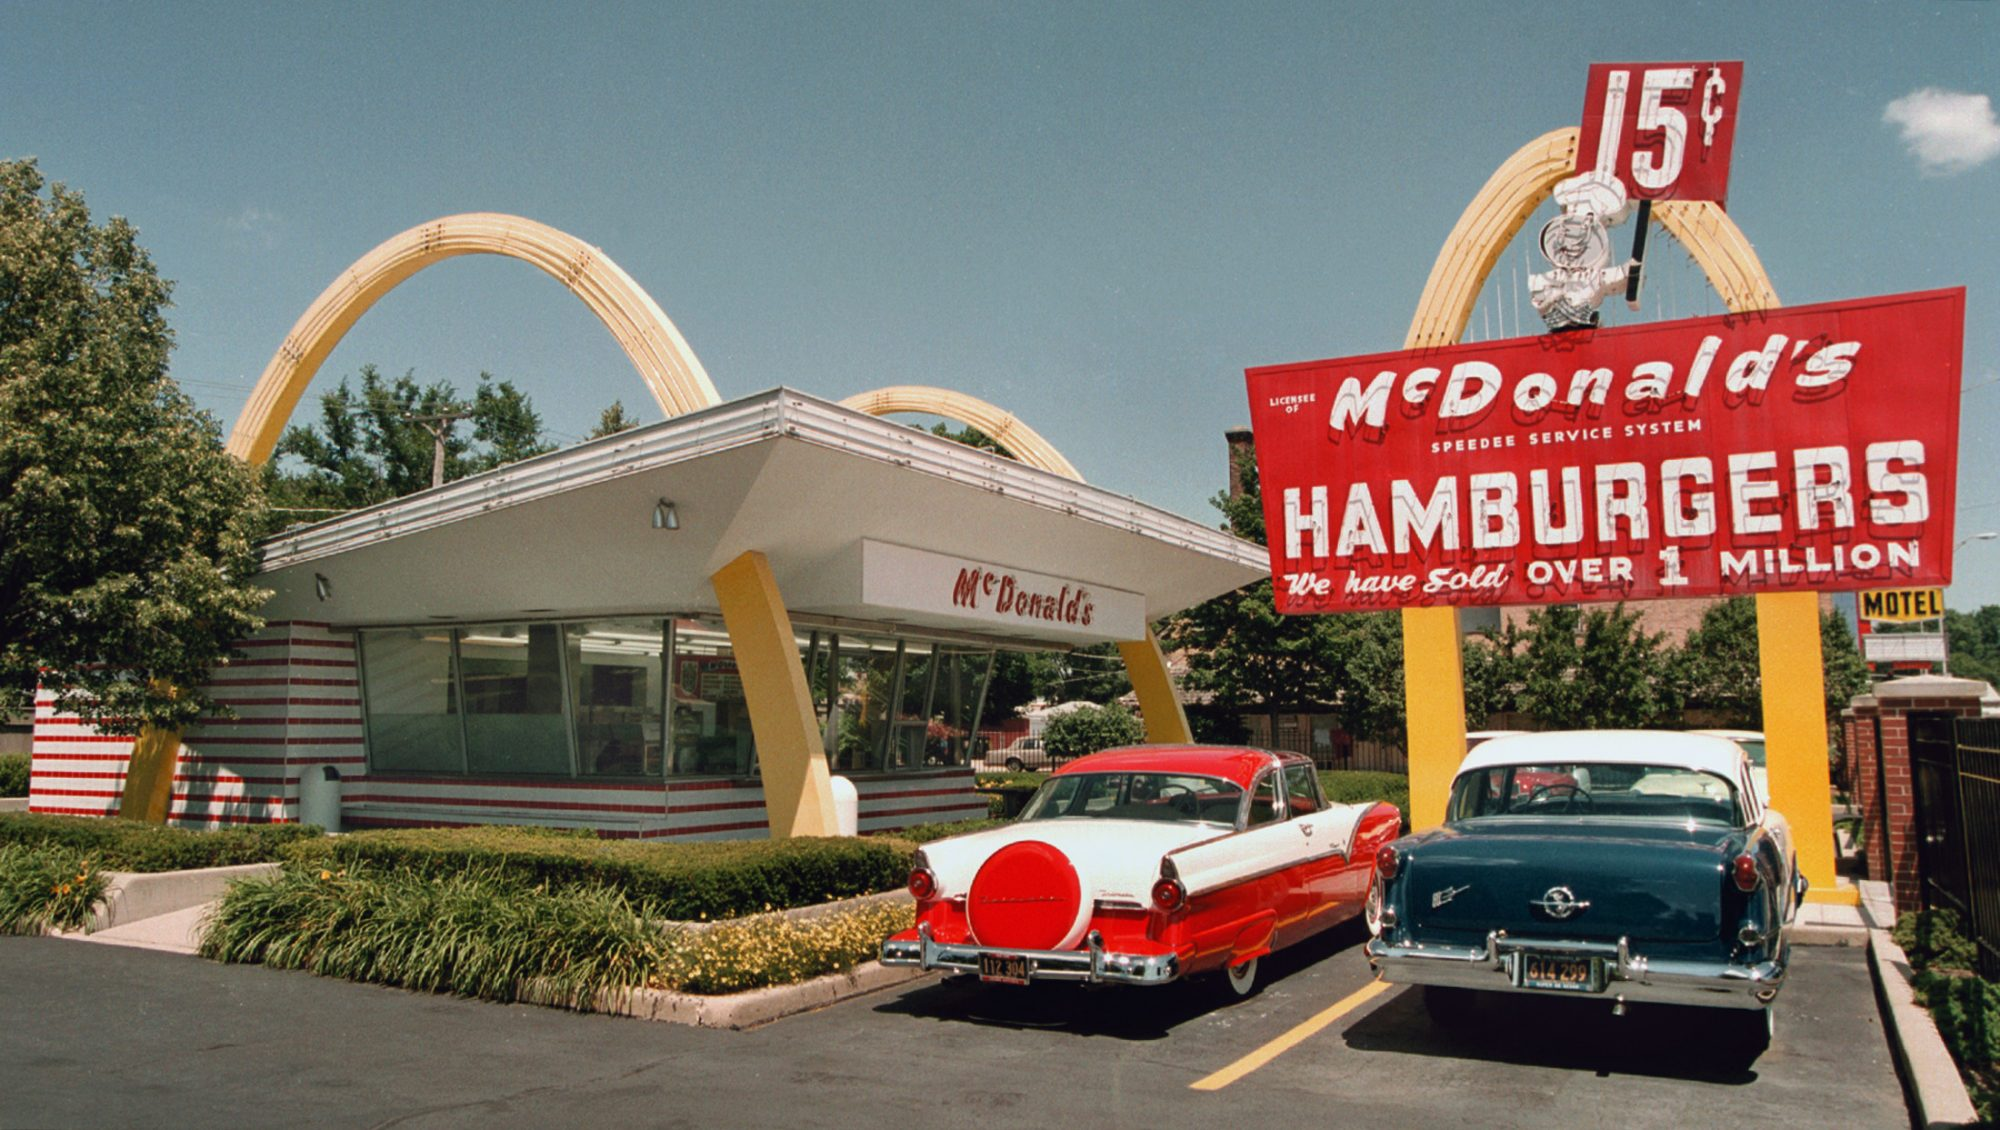 McDonald's No. 1 Store in Des Plaines, Illinois